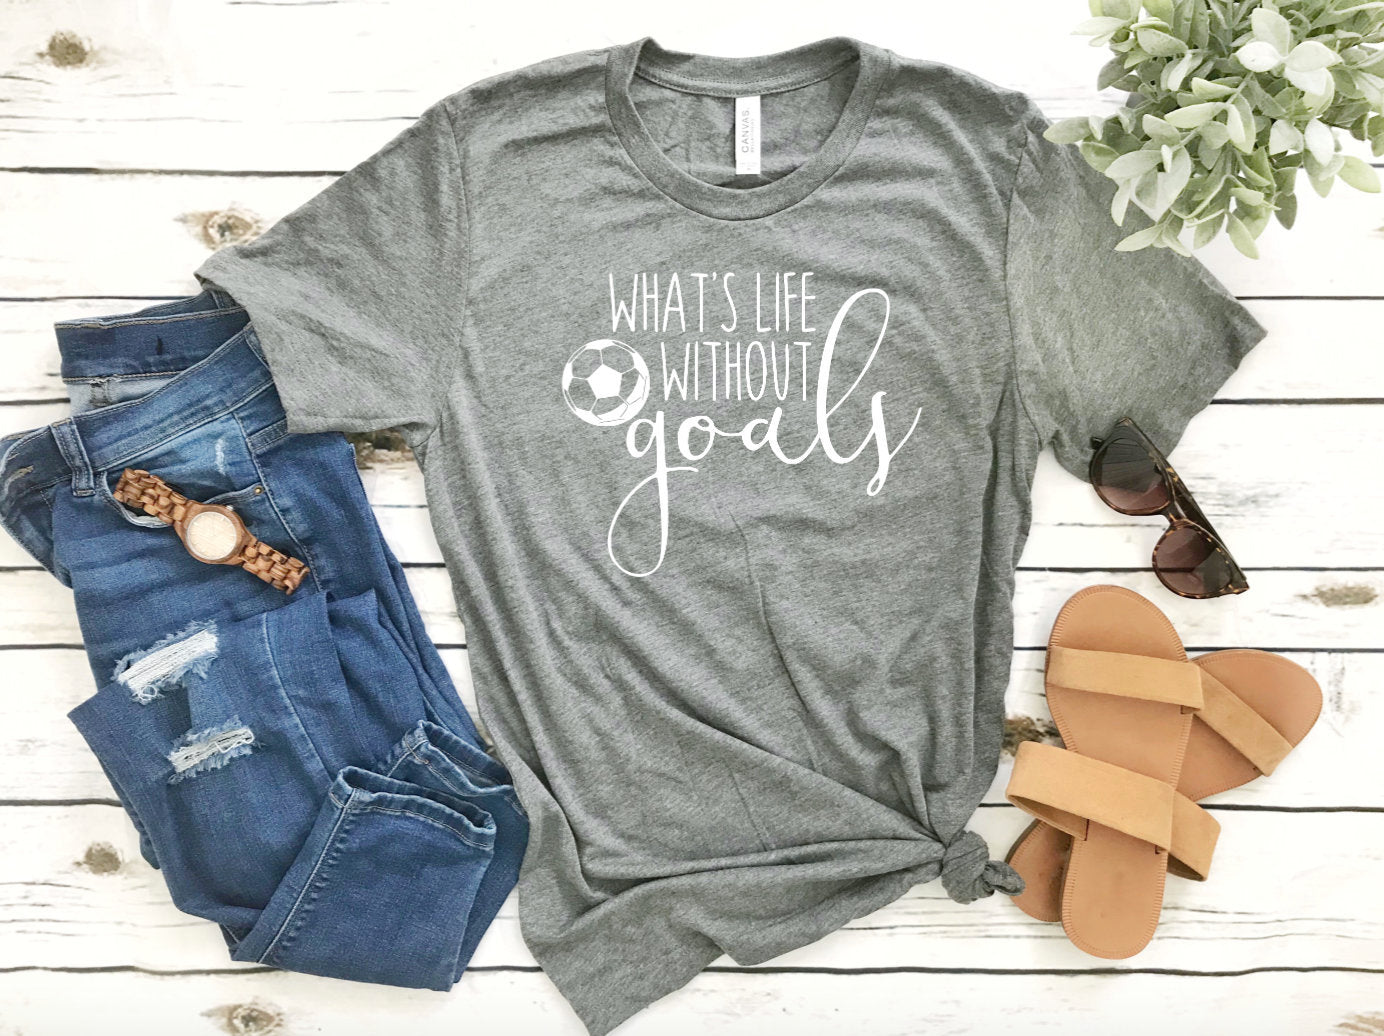 Whats life without Goals Soccer Shirt - Cute Soccer T-shirt - Women's Soccer Shirt